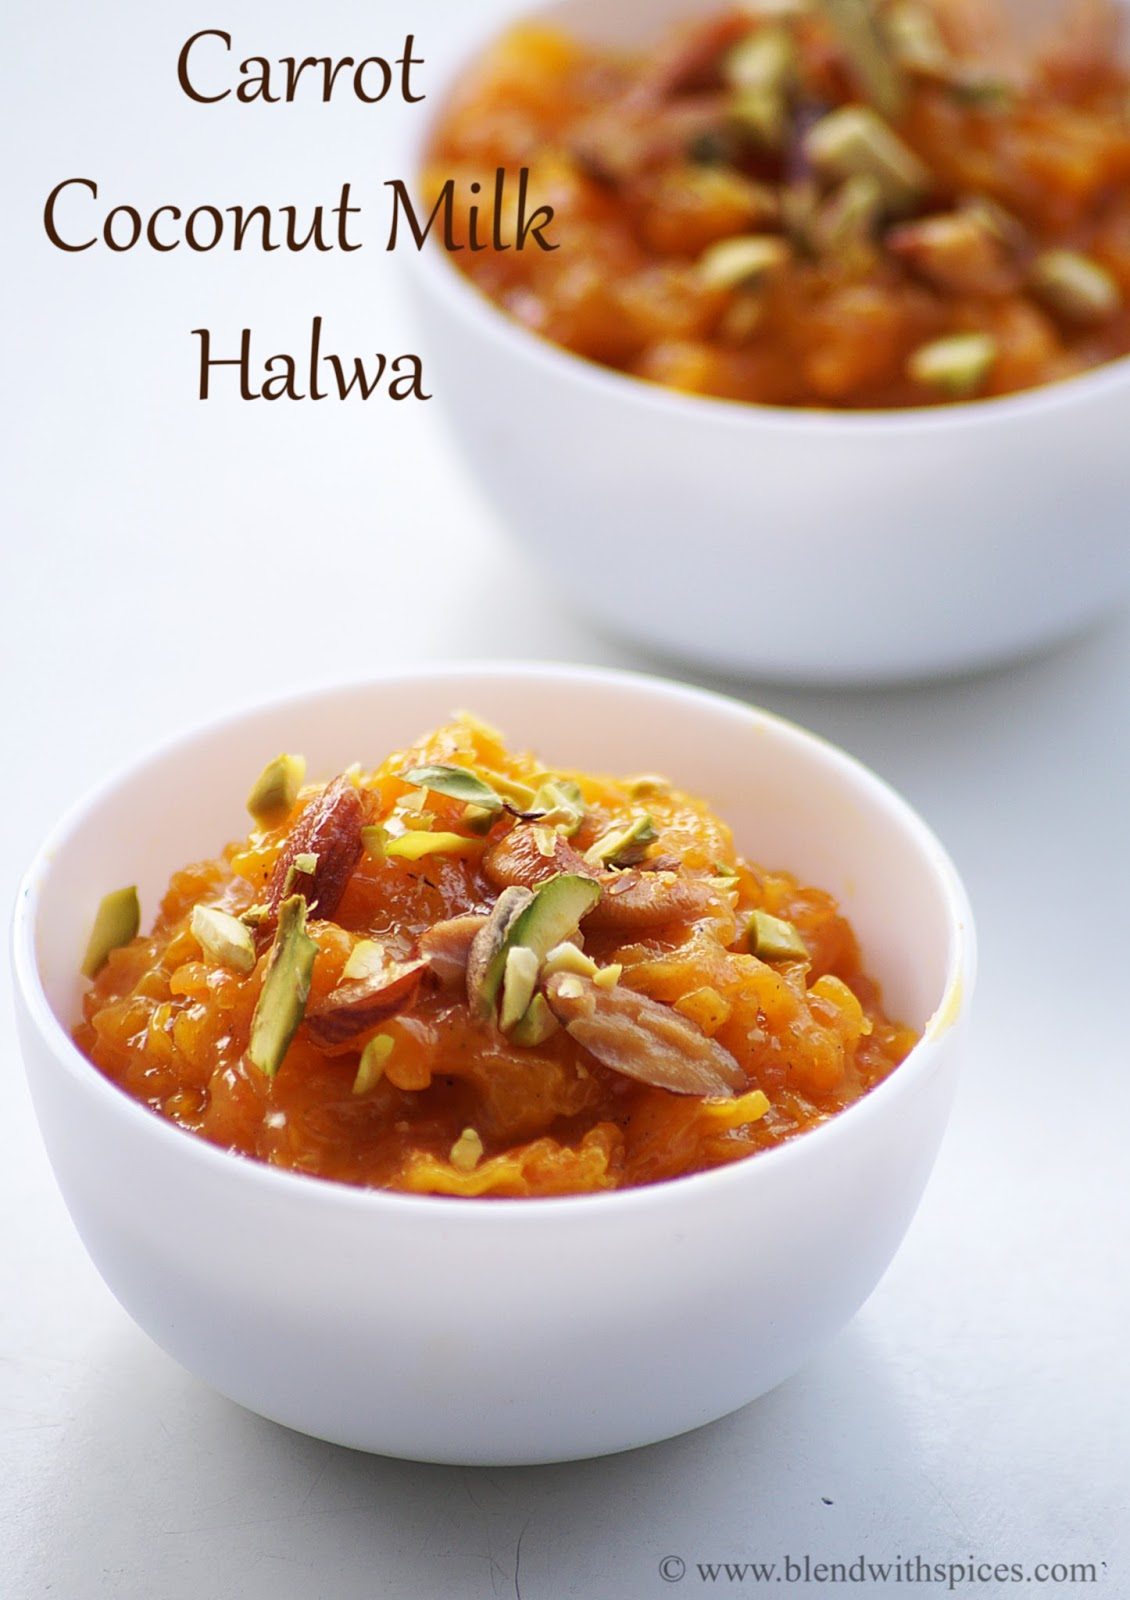 Carrot Coconut Milk Halwa Recipe